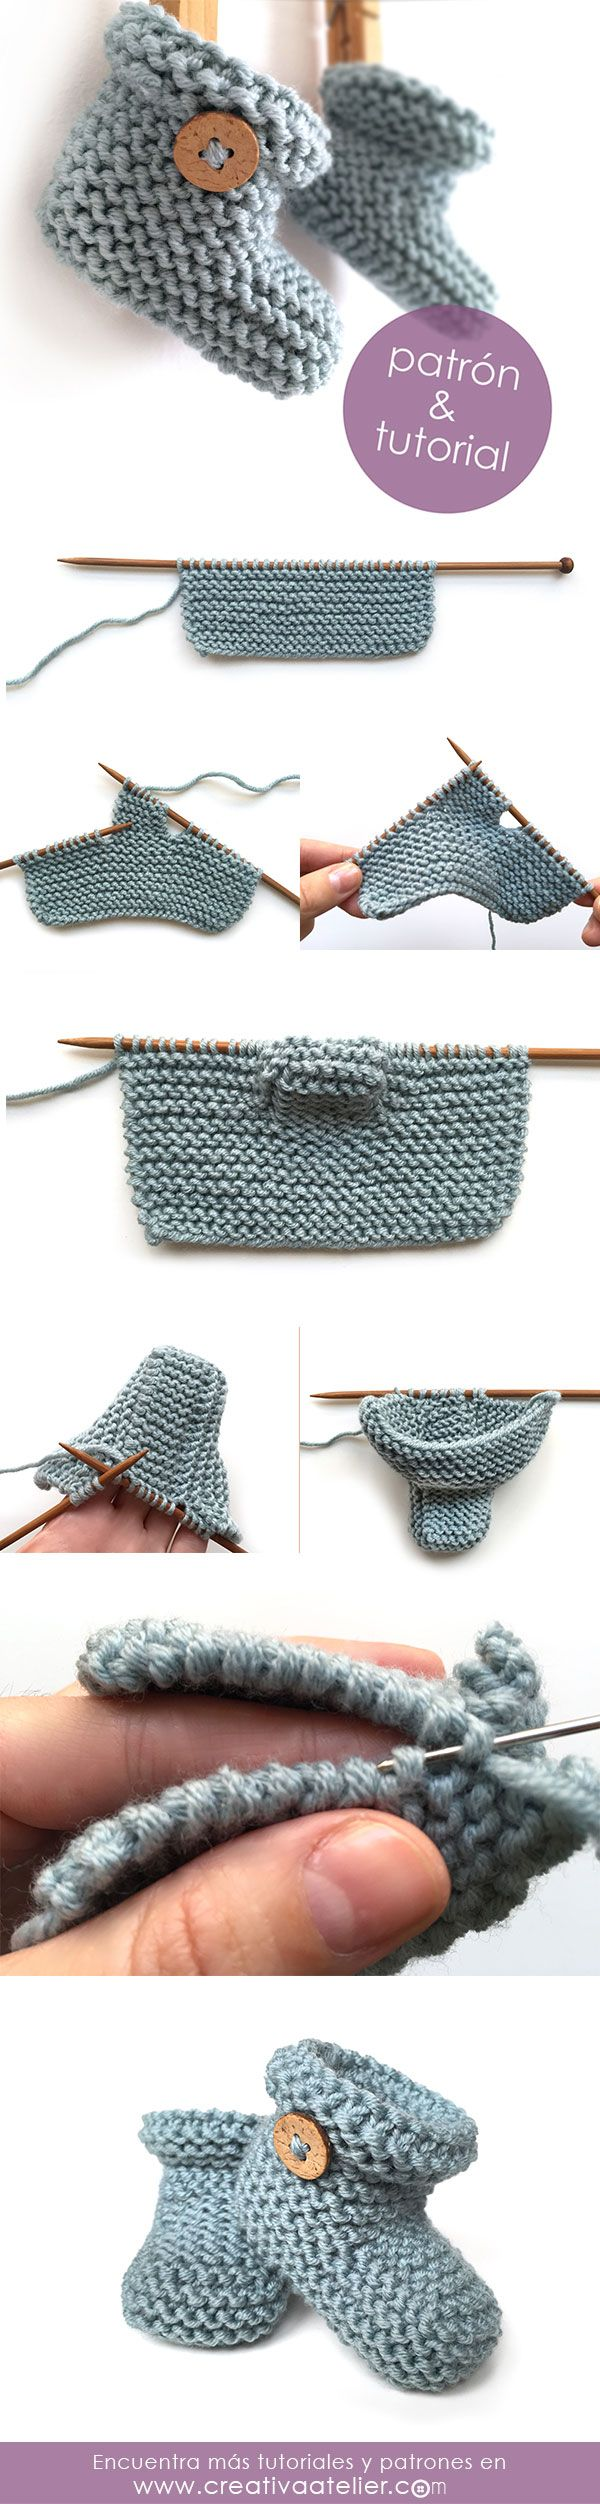 Patucos de punto sencillos - Tutorial y patrón - Simple Knitted Baby booties…